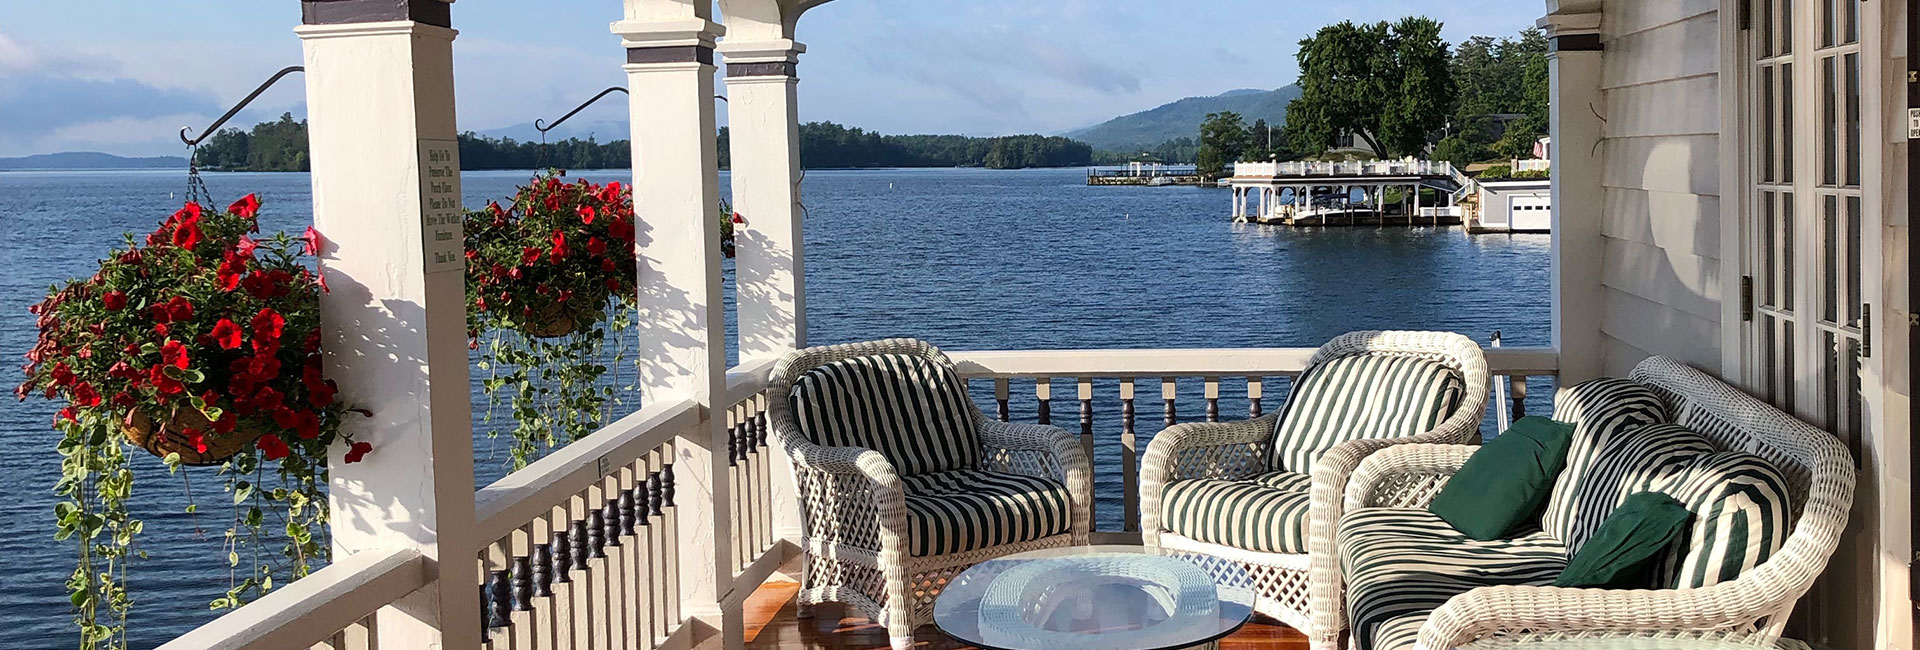 Boathouse waterfront sitting area on front porch